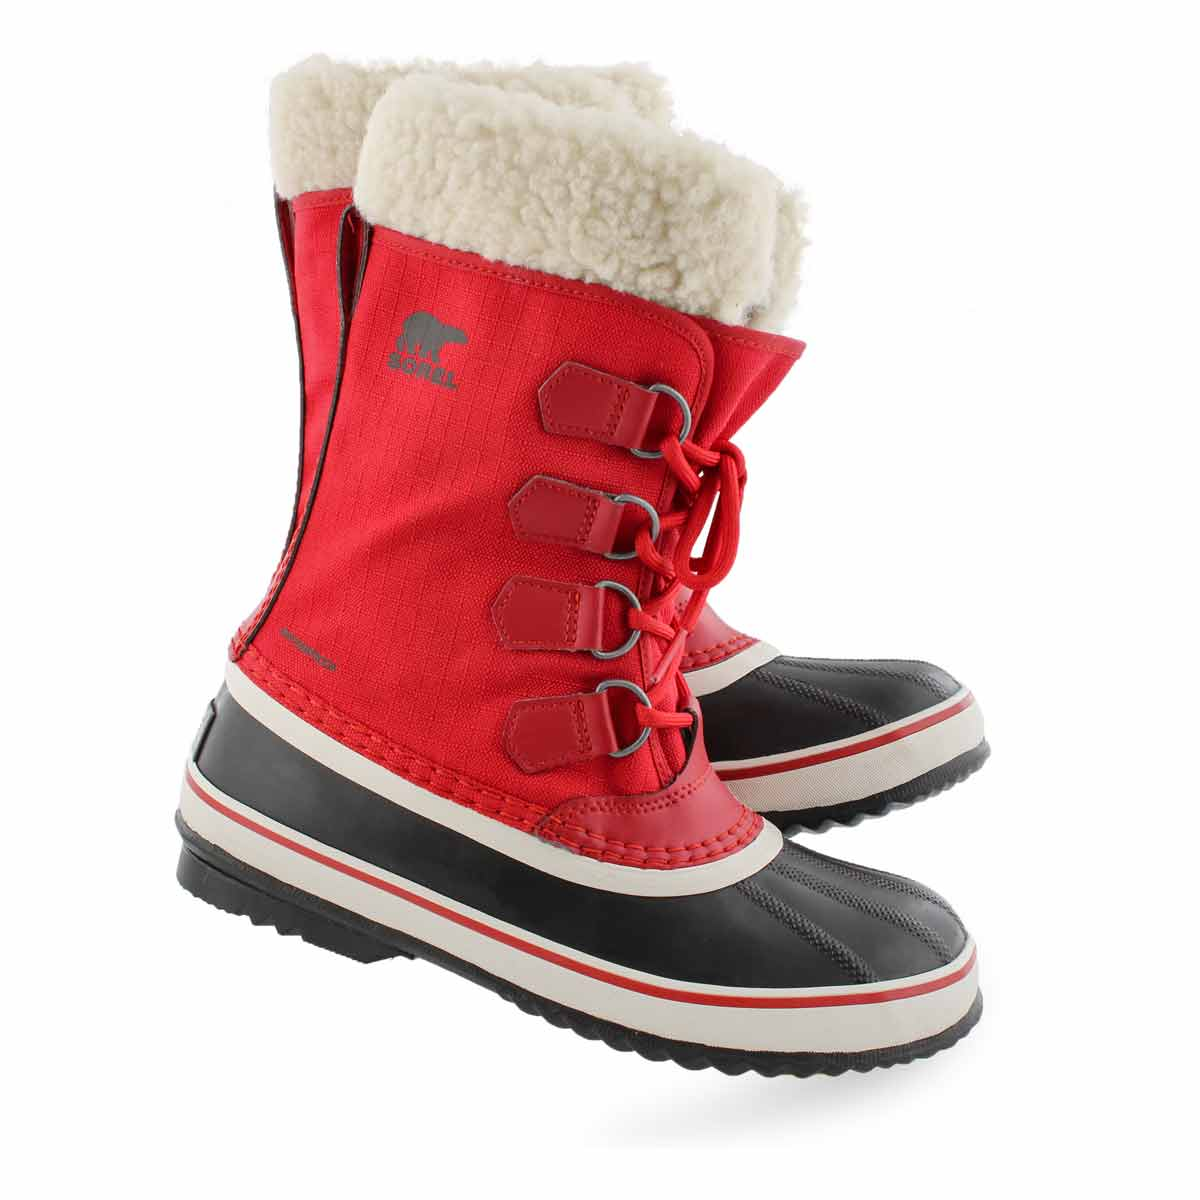 Lds Winter Carnival mtn red wp wntr boot